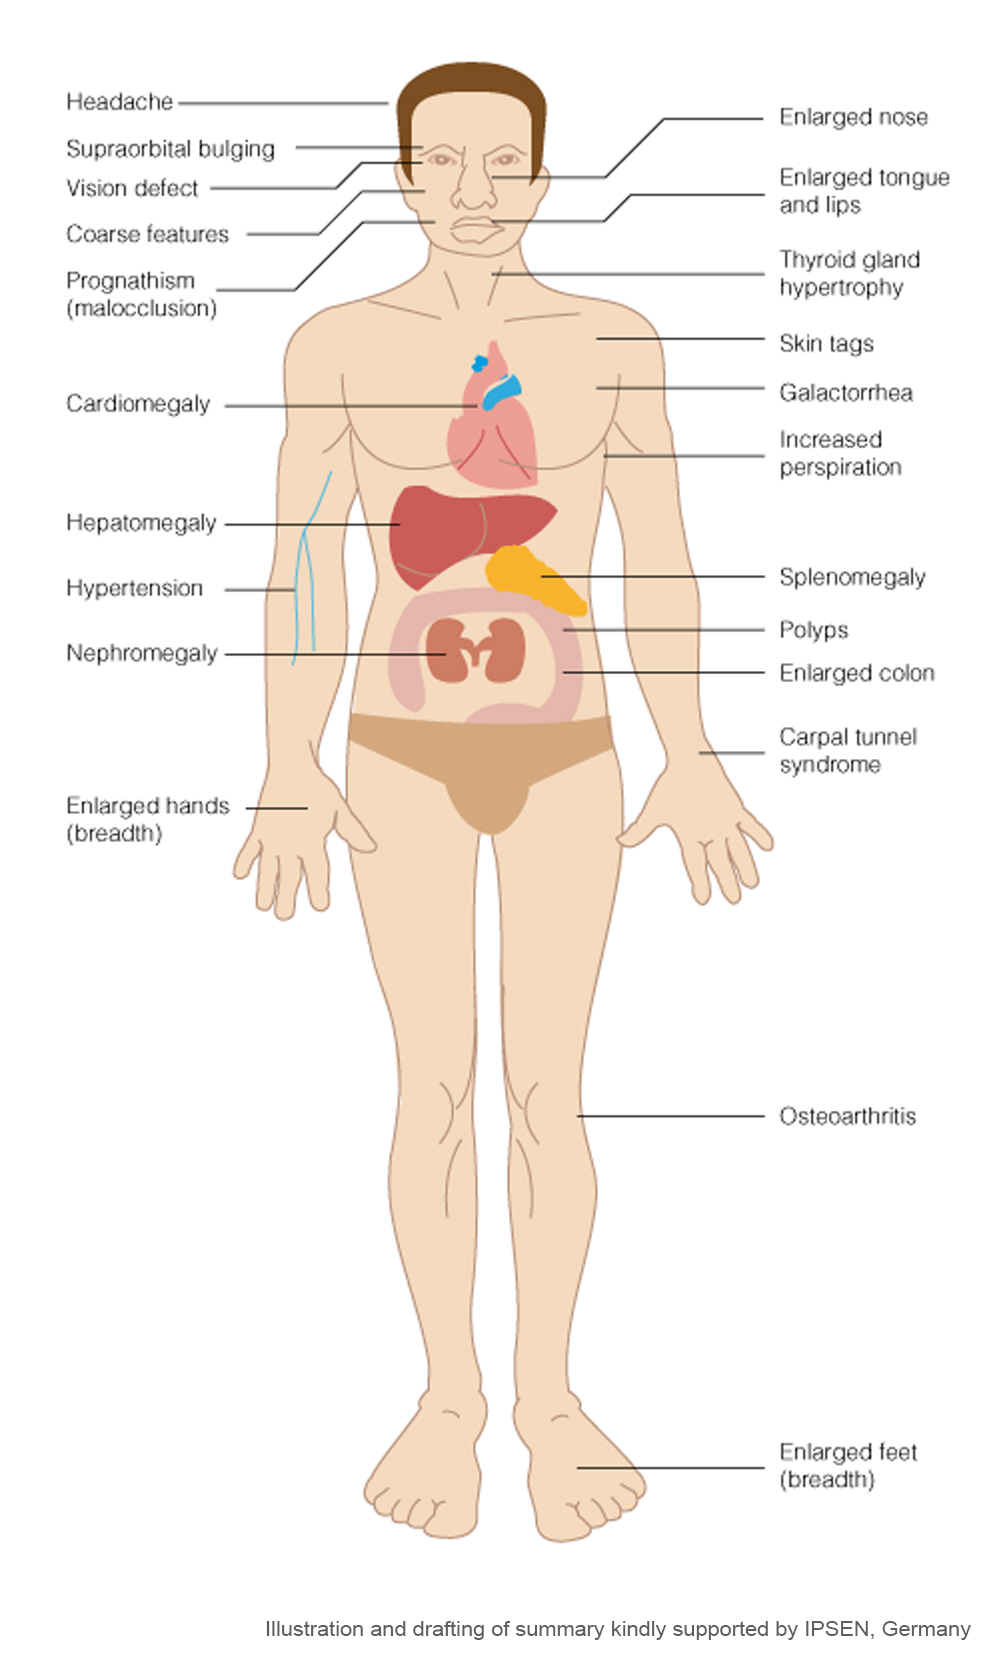 Seeing the signs: Acromegaly | Atlas of Science